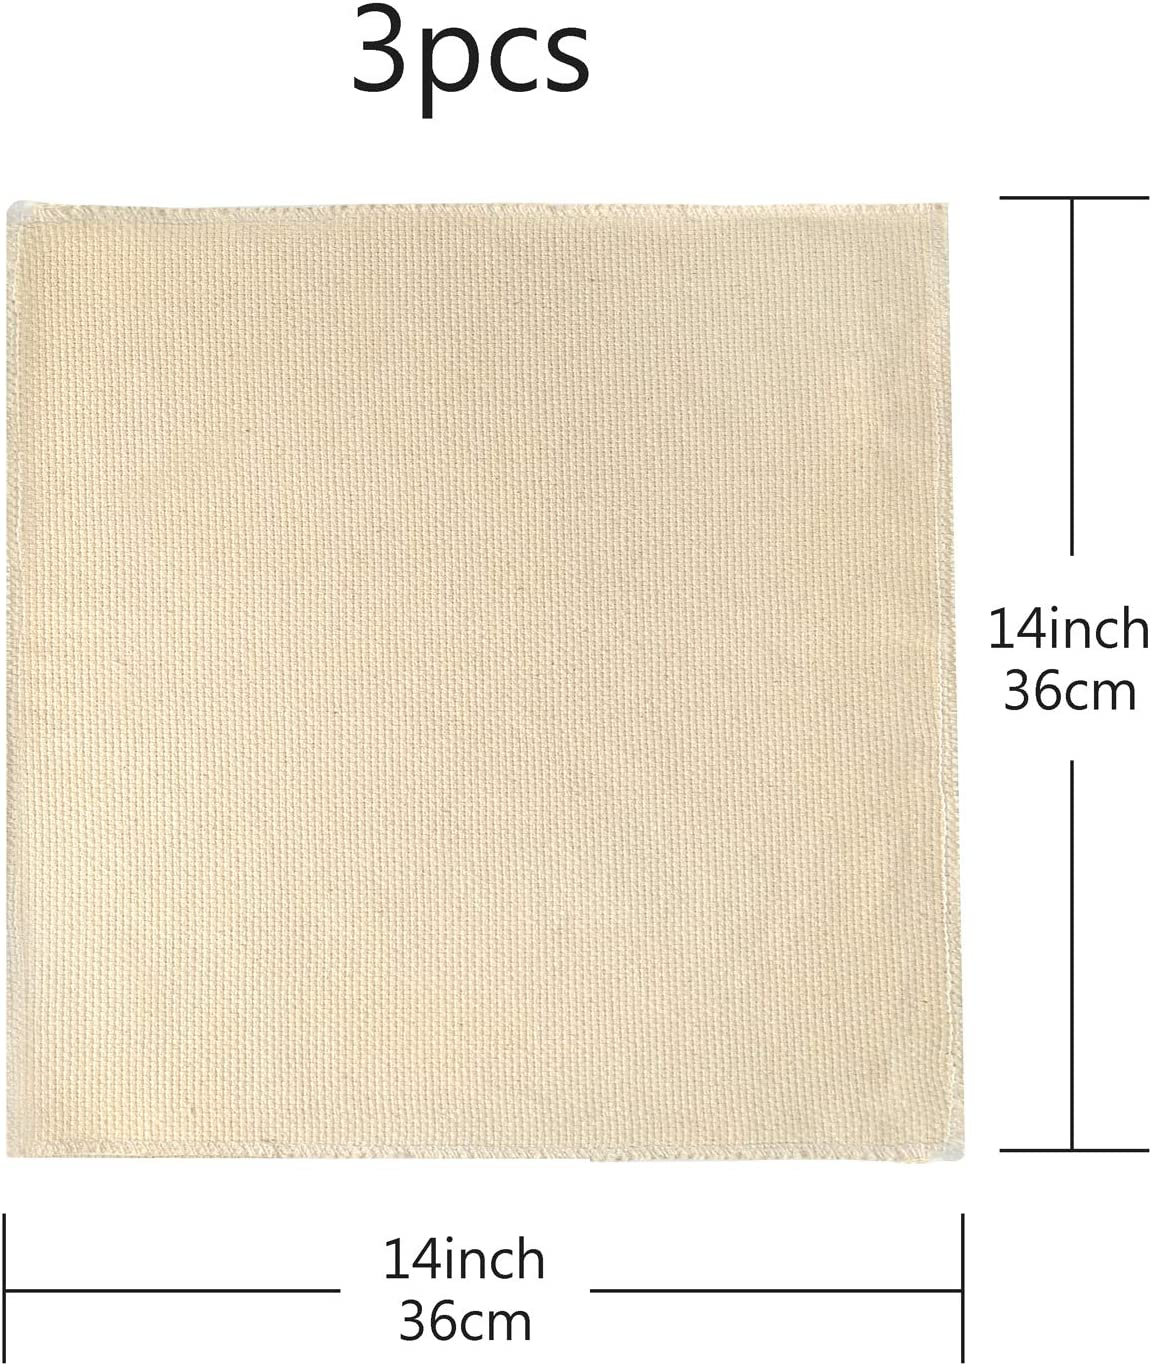 14 x 14 Inch Pllieay 3 Pieces Punch Needle Cloth Fabric Needlework Fabric for Punch Needle Embroidery Rug-Punch /& Pinch Needle